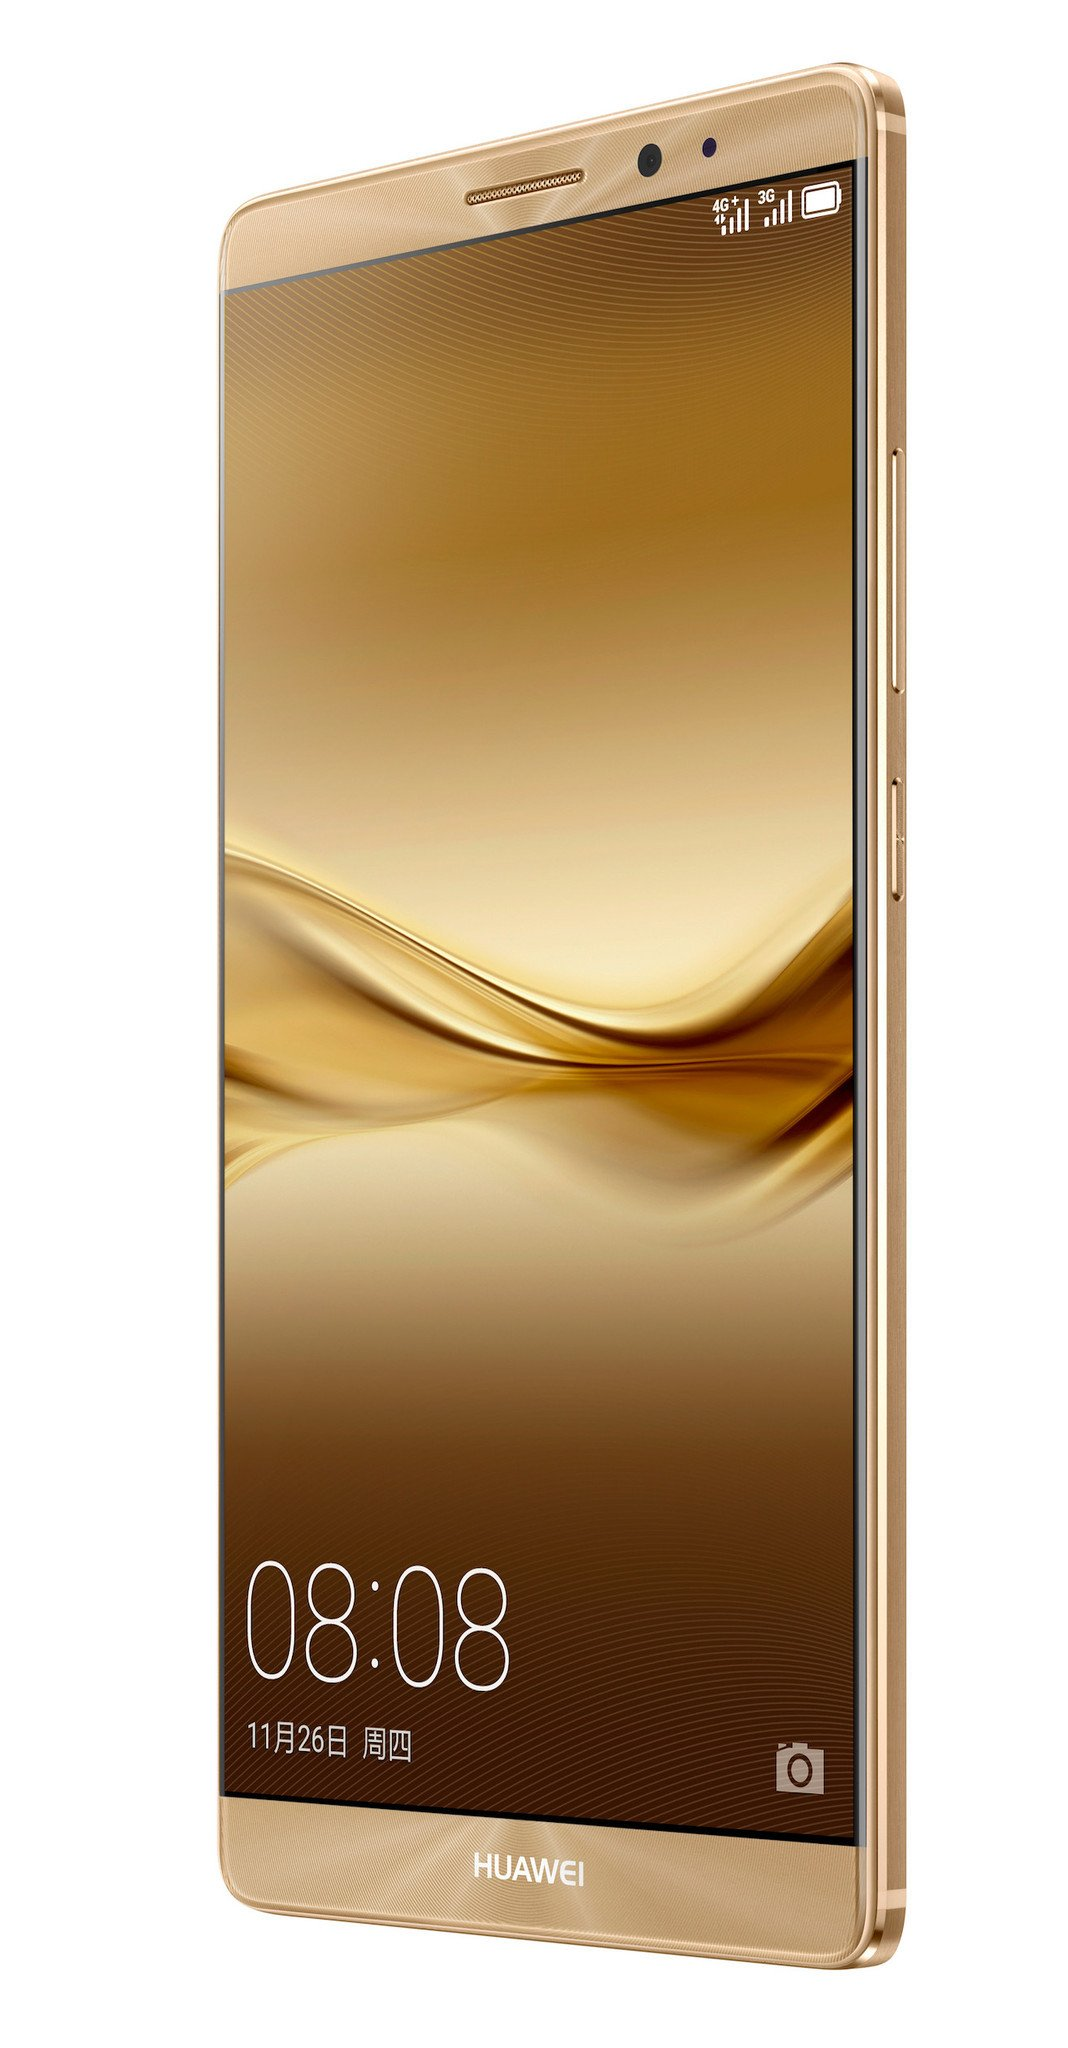 Huawei Mate 8 front right angle